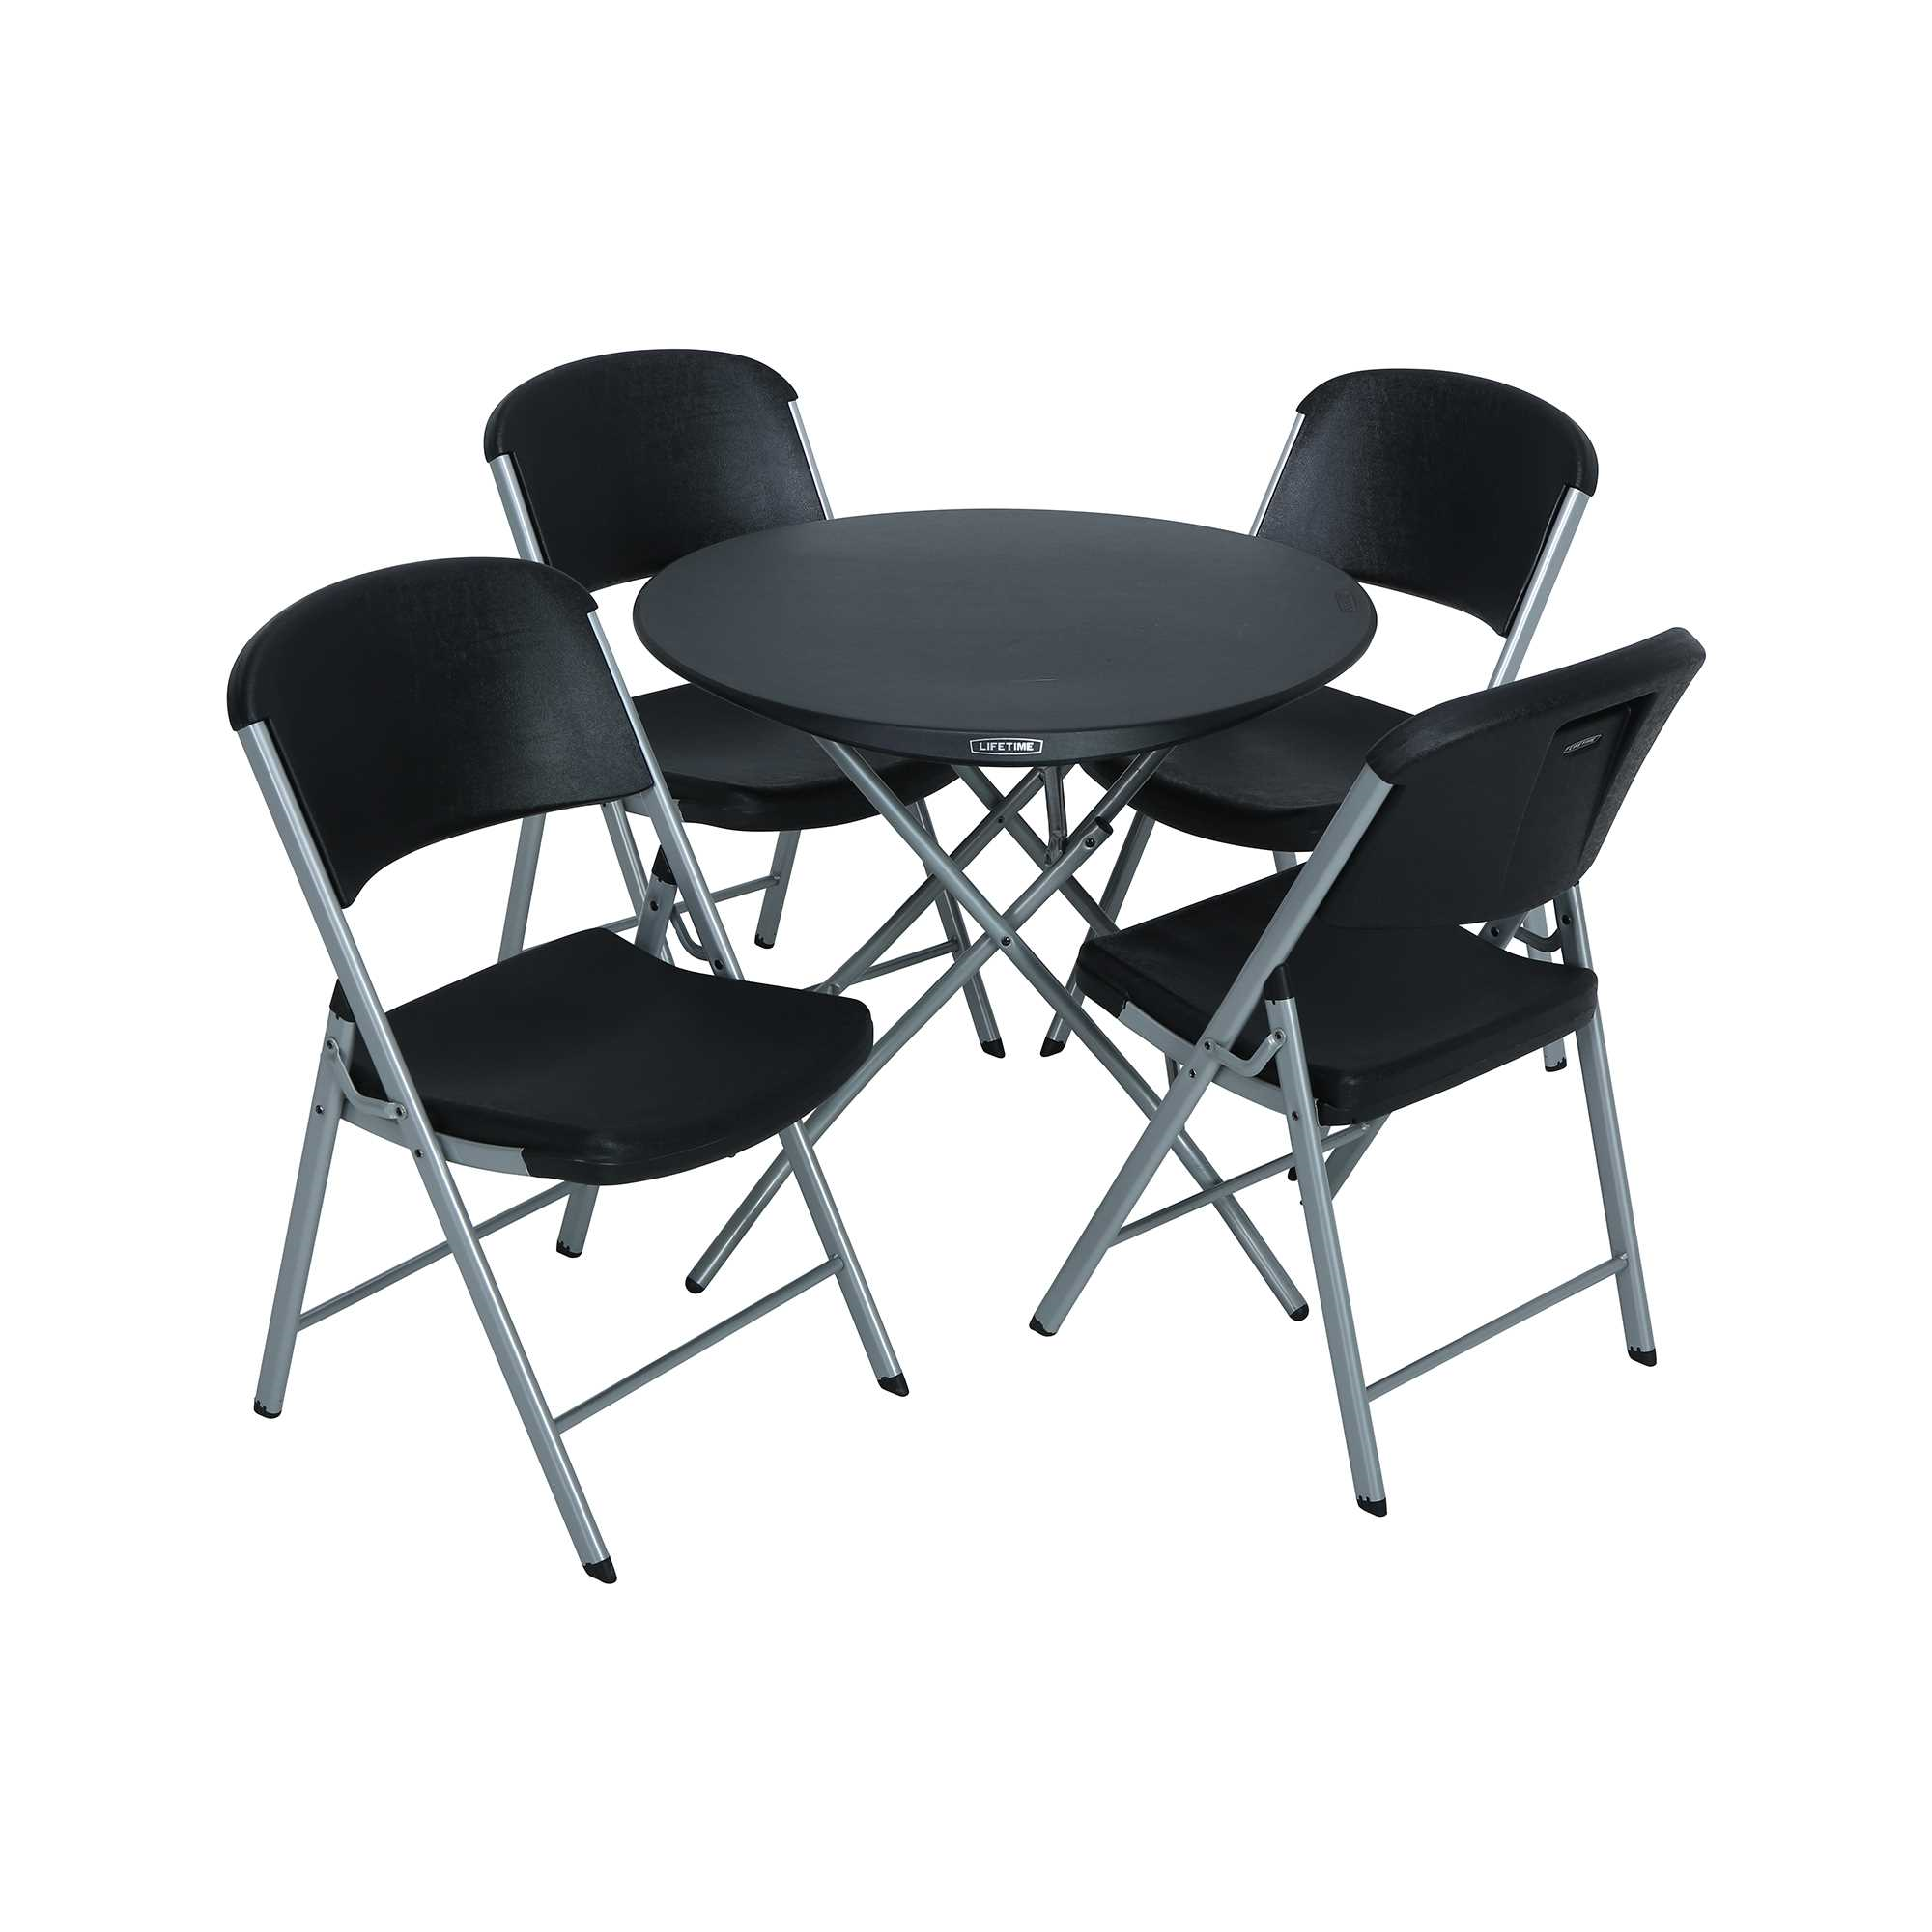 Lifetime 33-Inch Round Personal Table and (4) Chairs Combo